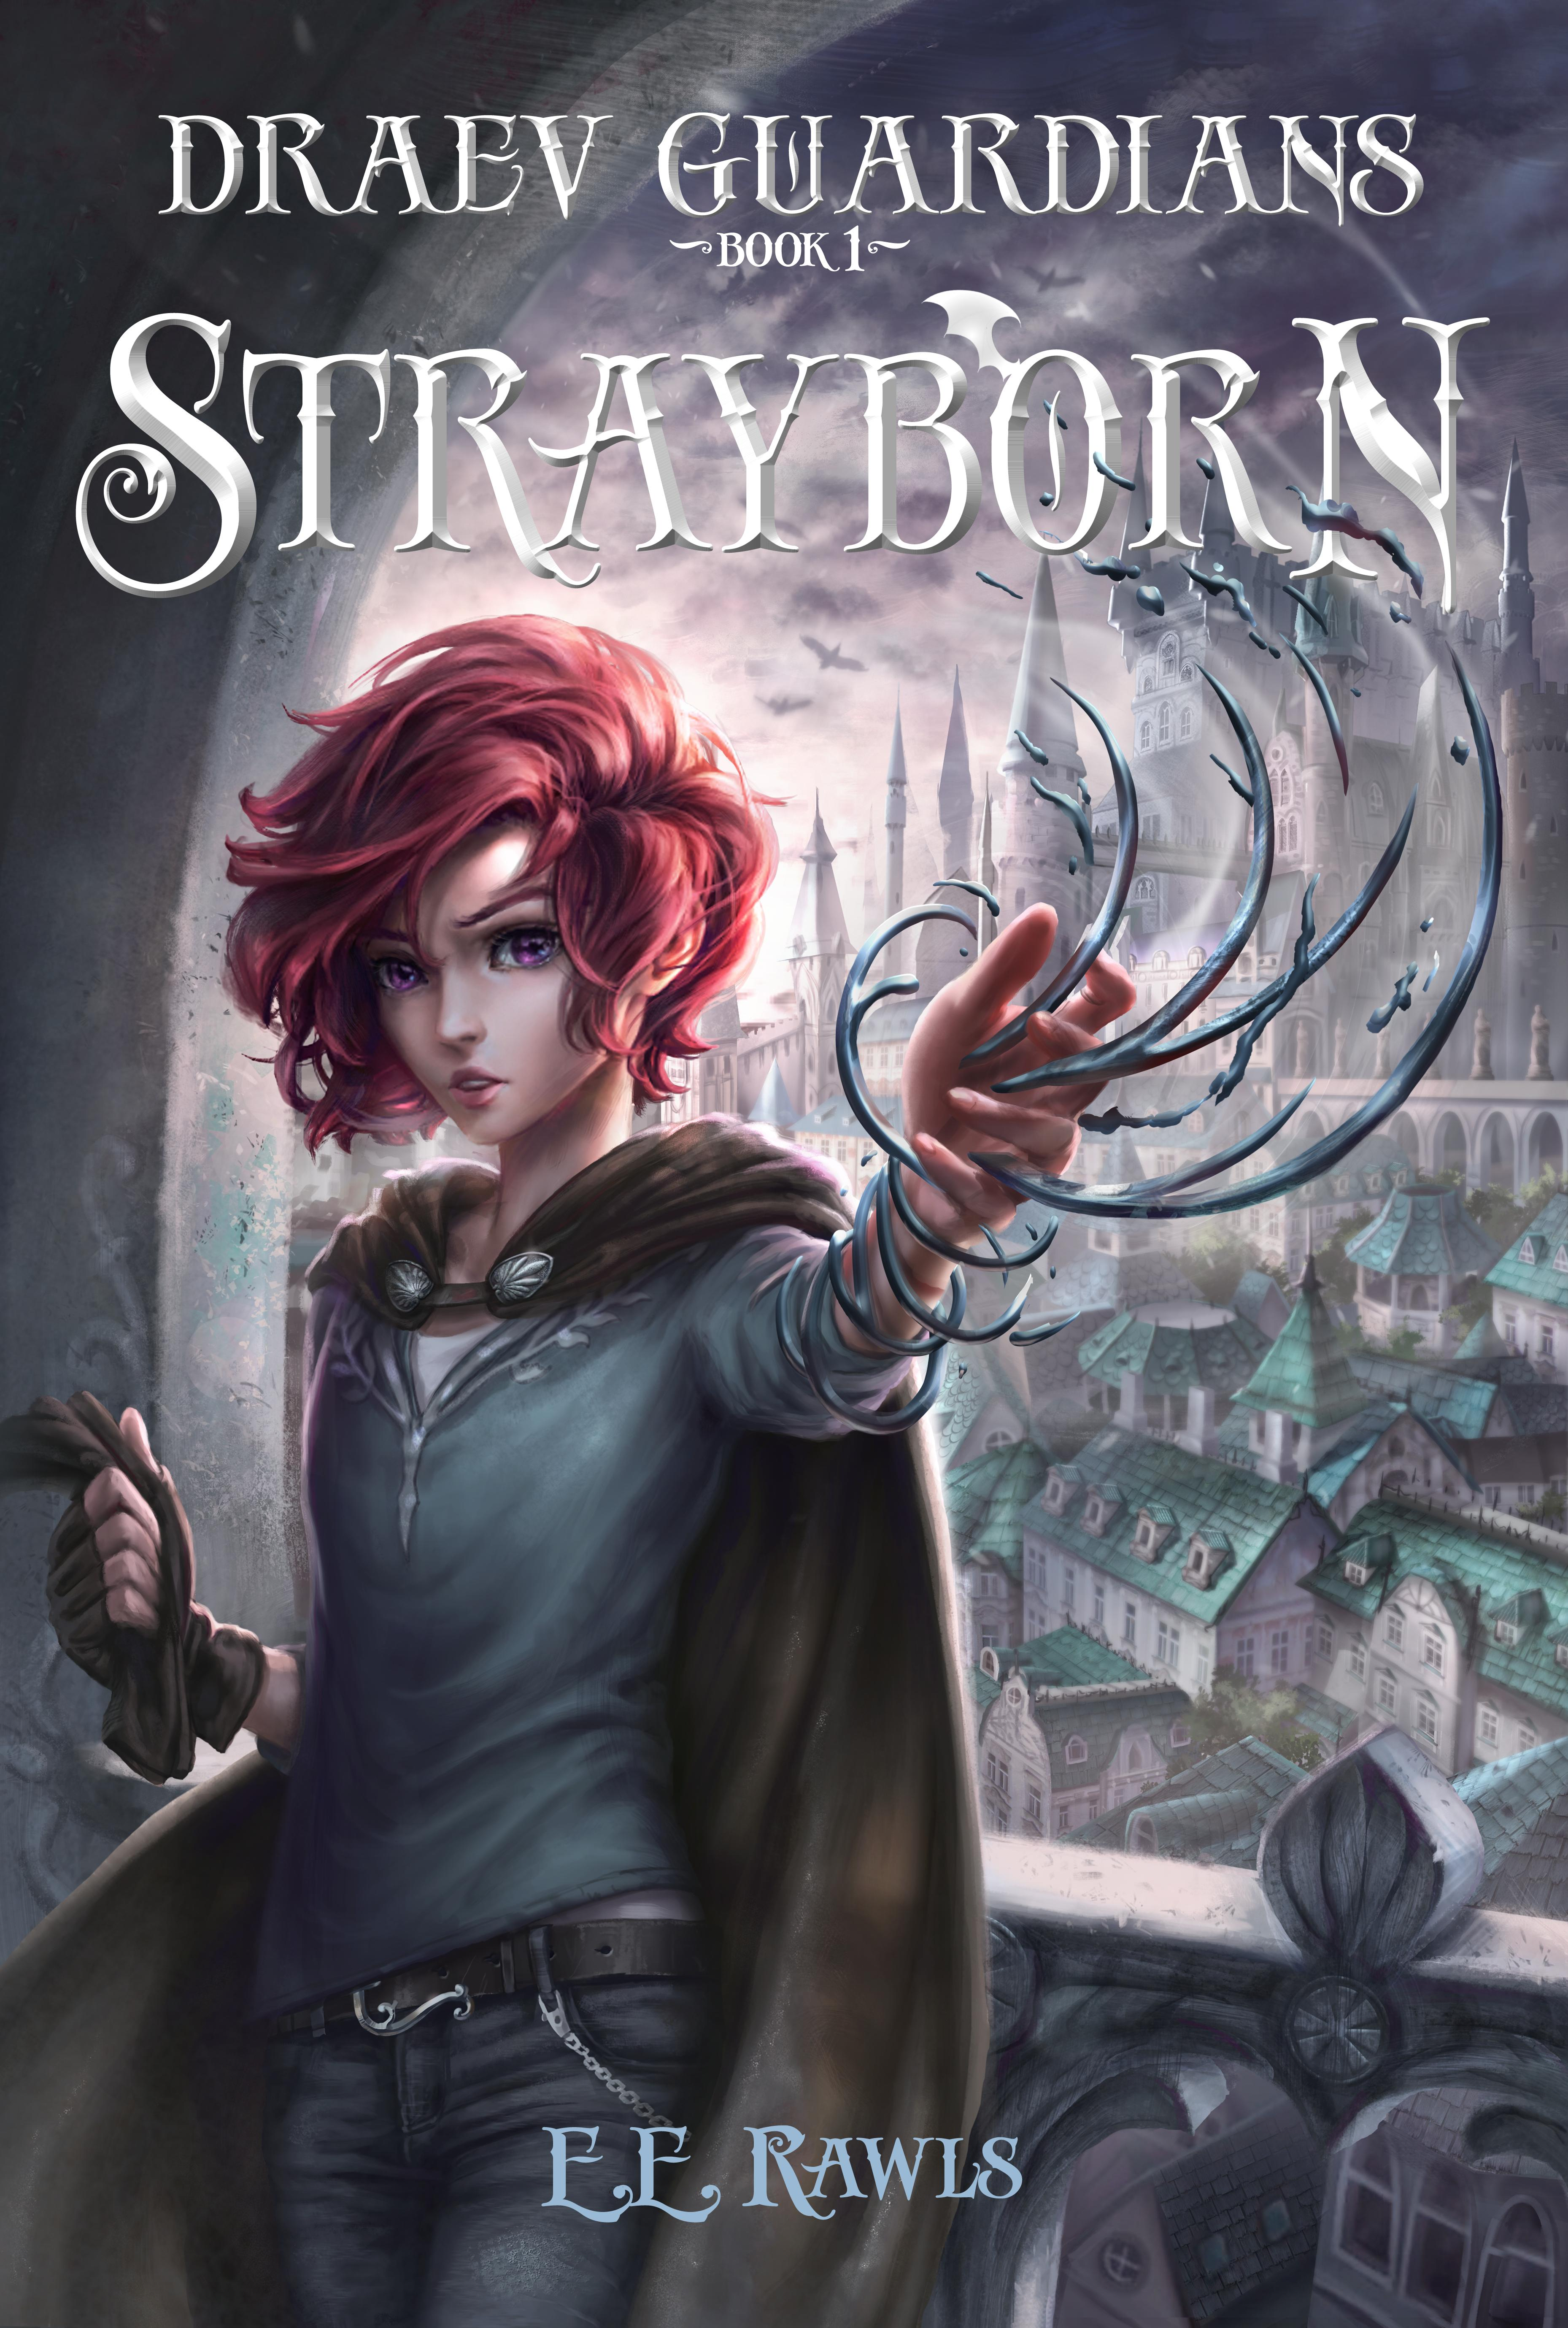 Strayborn, Draev Guardians, new fantasy books for teens, new fantasy books for kids, new fall books 2019, books with elemental powers, books with female and male protagonist, christian epic fantasy series, christian fantasy for teens, author E.E. Rawls,